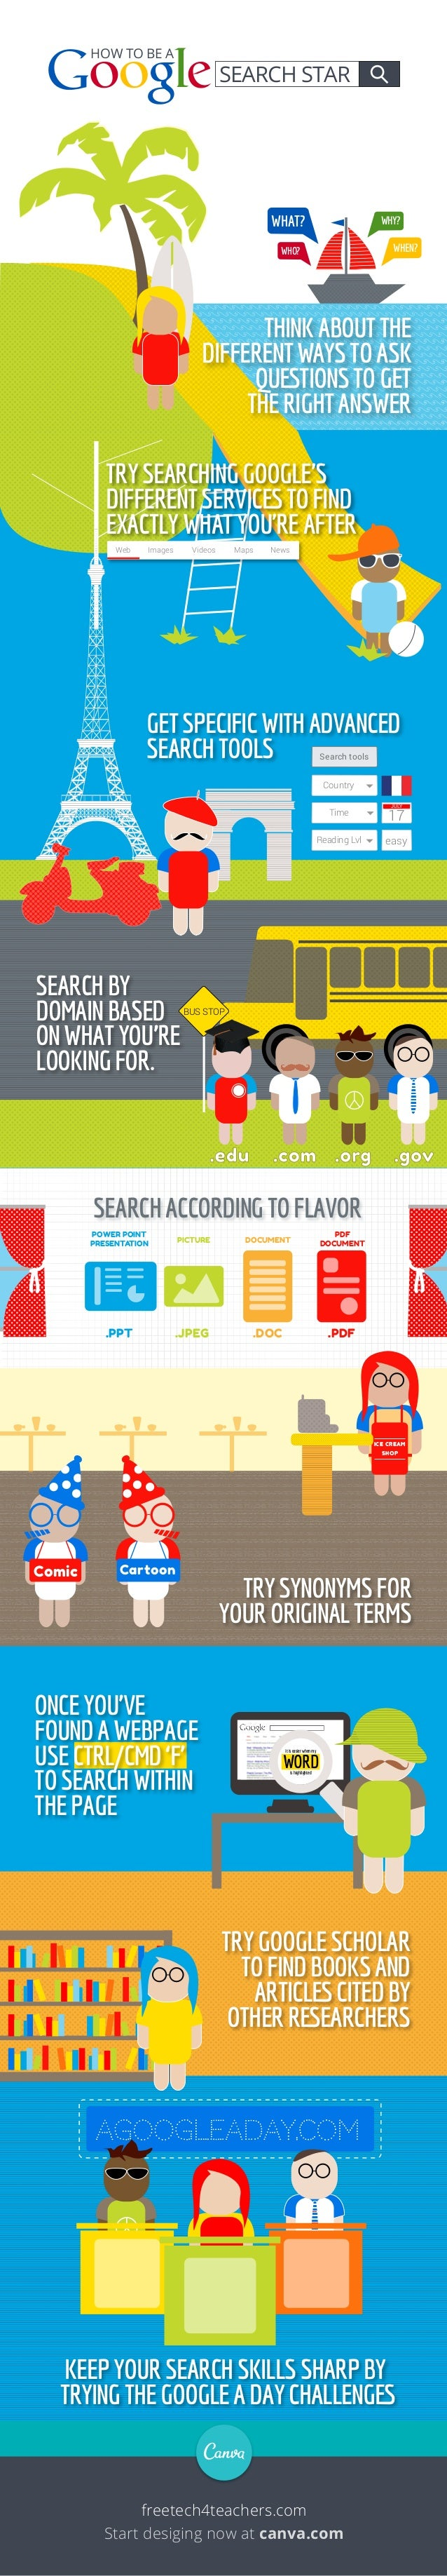 How to be a Google Search Star